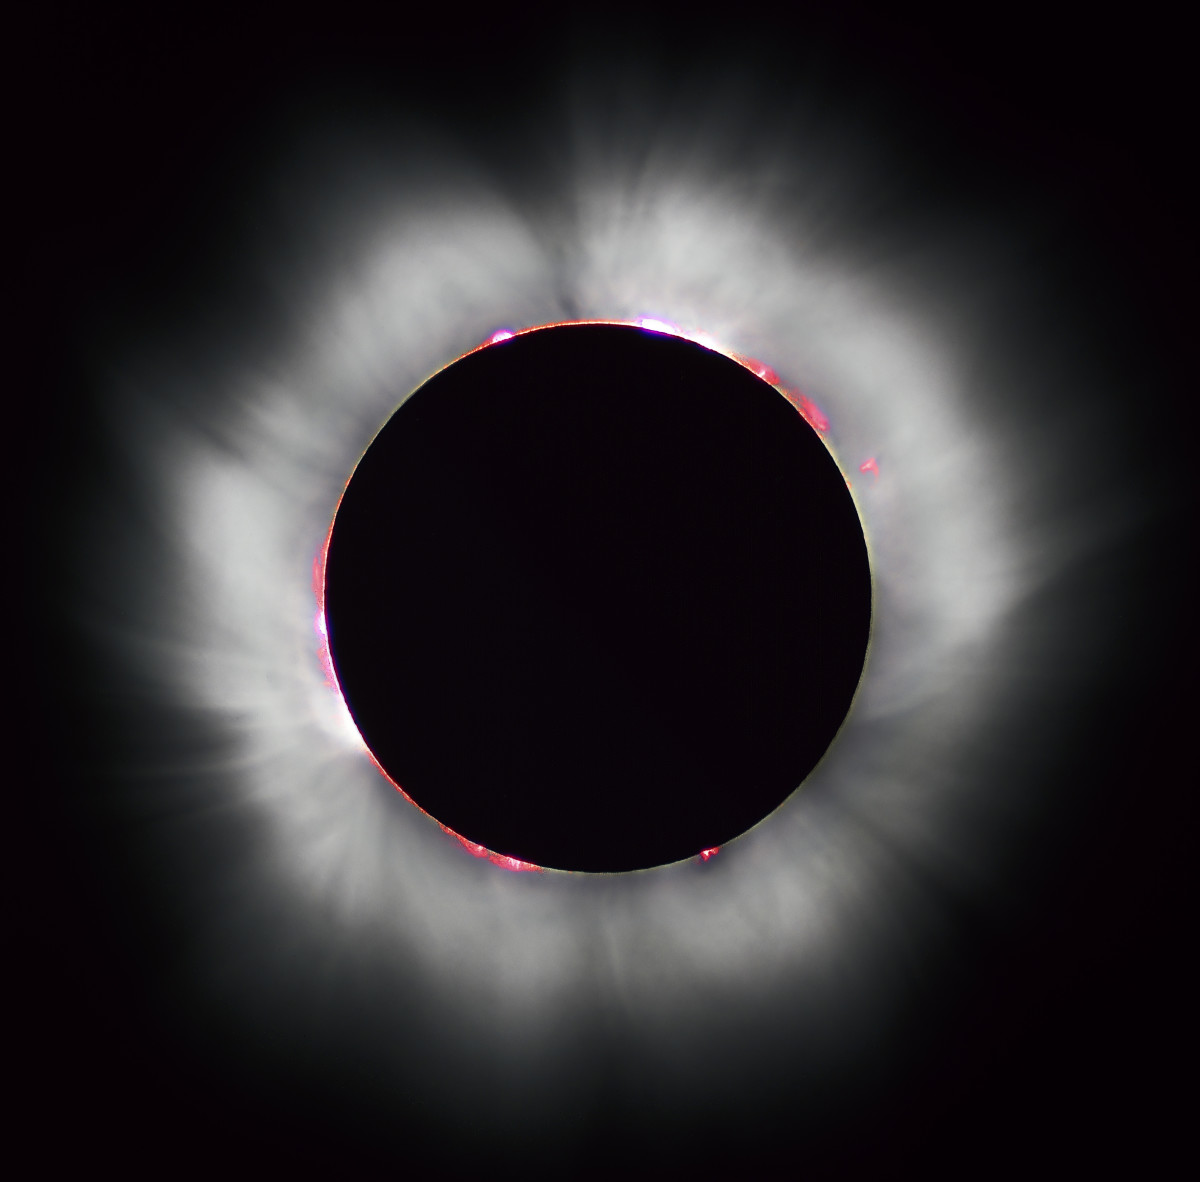 A total eclipse is surrounded by a corona of light, A corona is defined as the rarefied gaseous envelope of the sun.